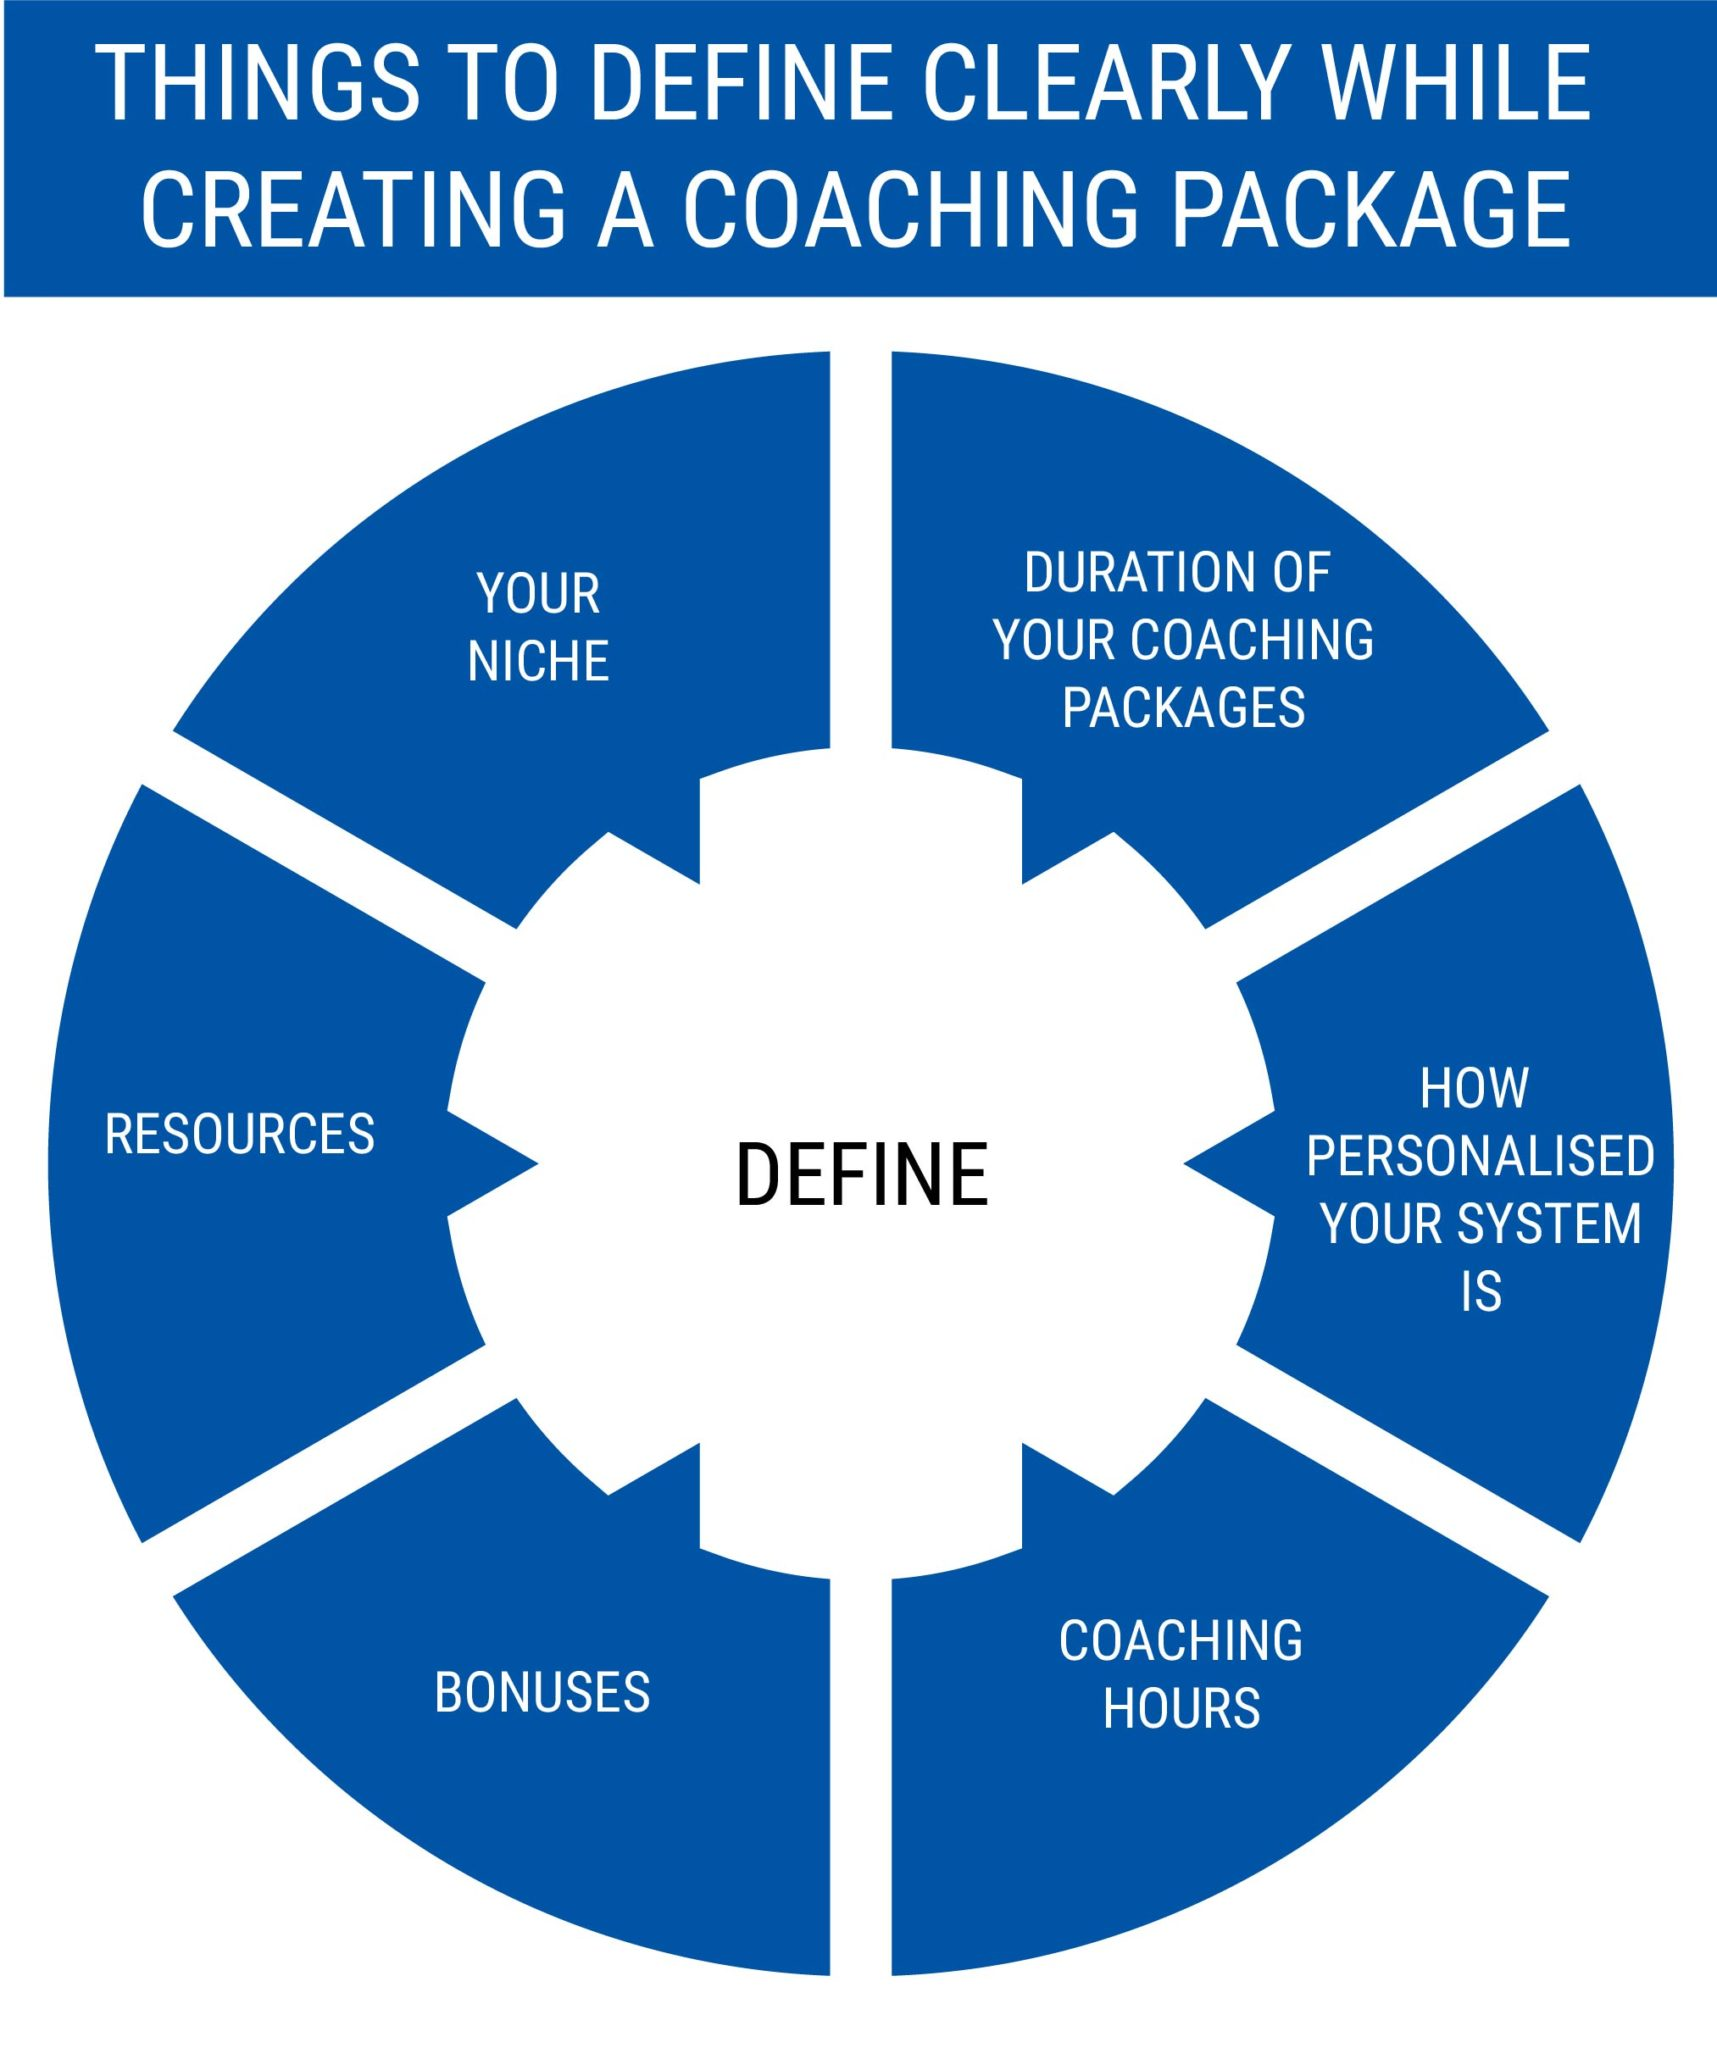 THINGS TO DEFINE CLEARLY WHILE CREATING A COACHING PACKAGE